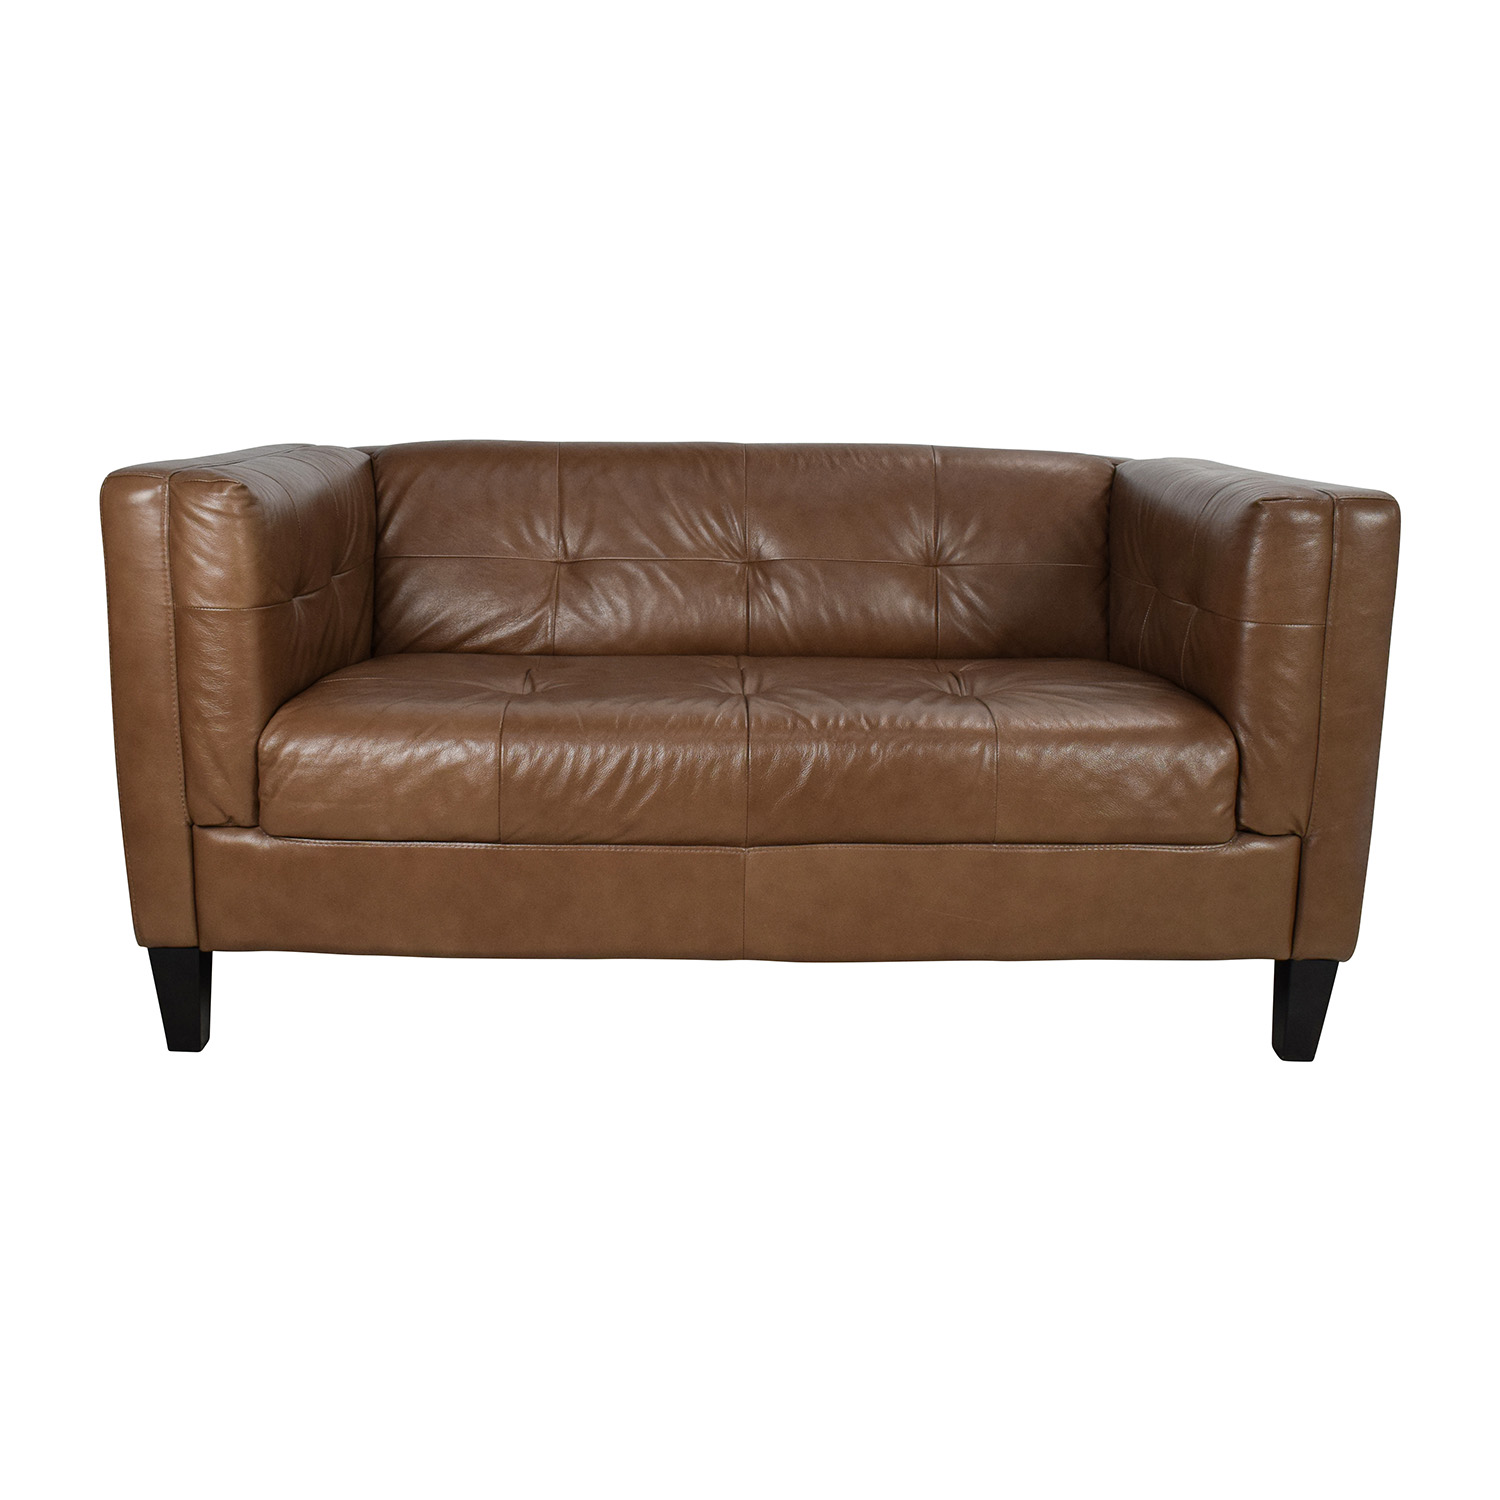 shop Raymour & Flanigan Bartolo Leather Loveseat Raymour & Flanigan